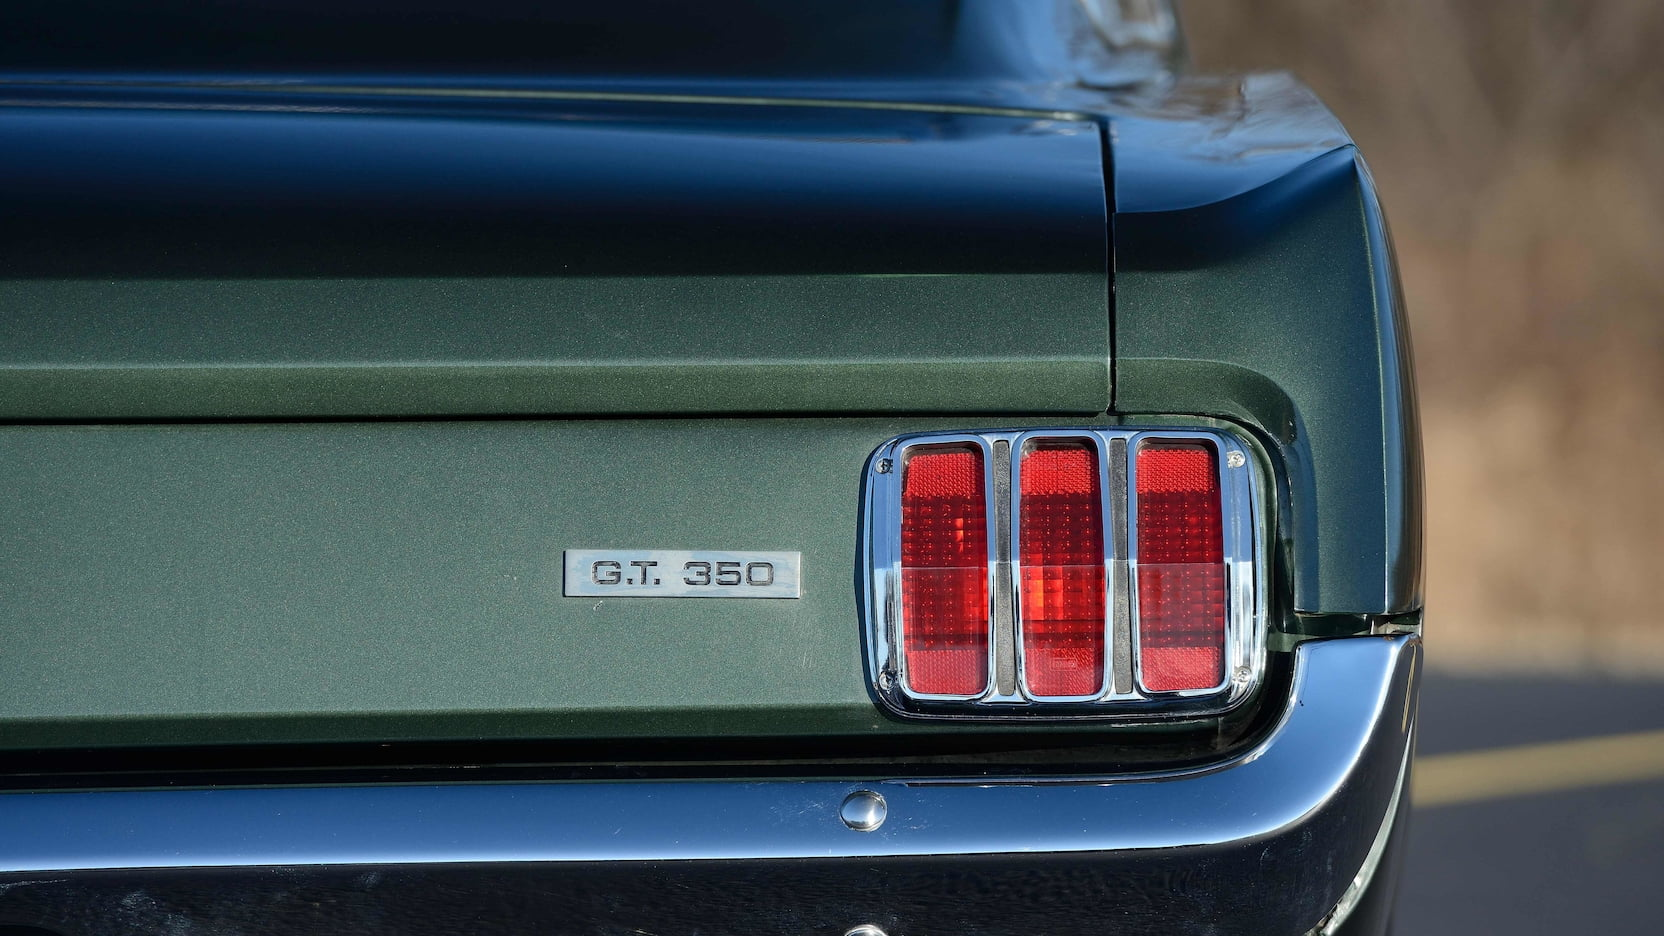 1966 Shelby GT350 tail light detail